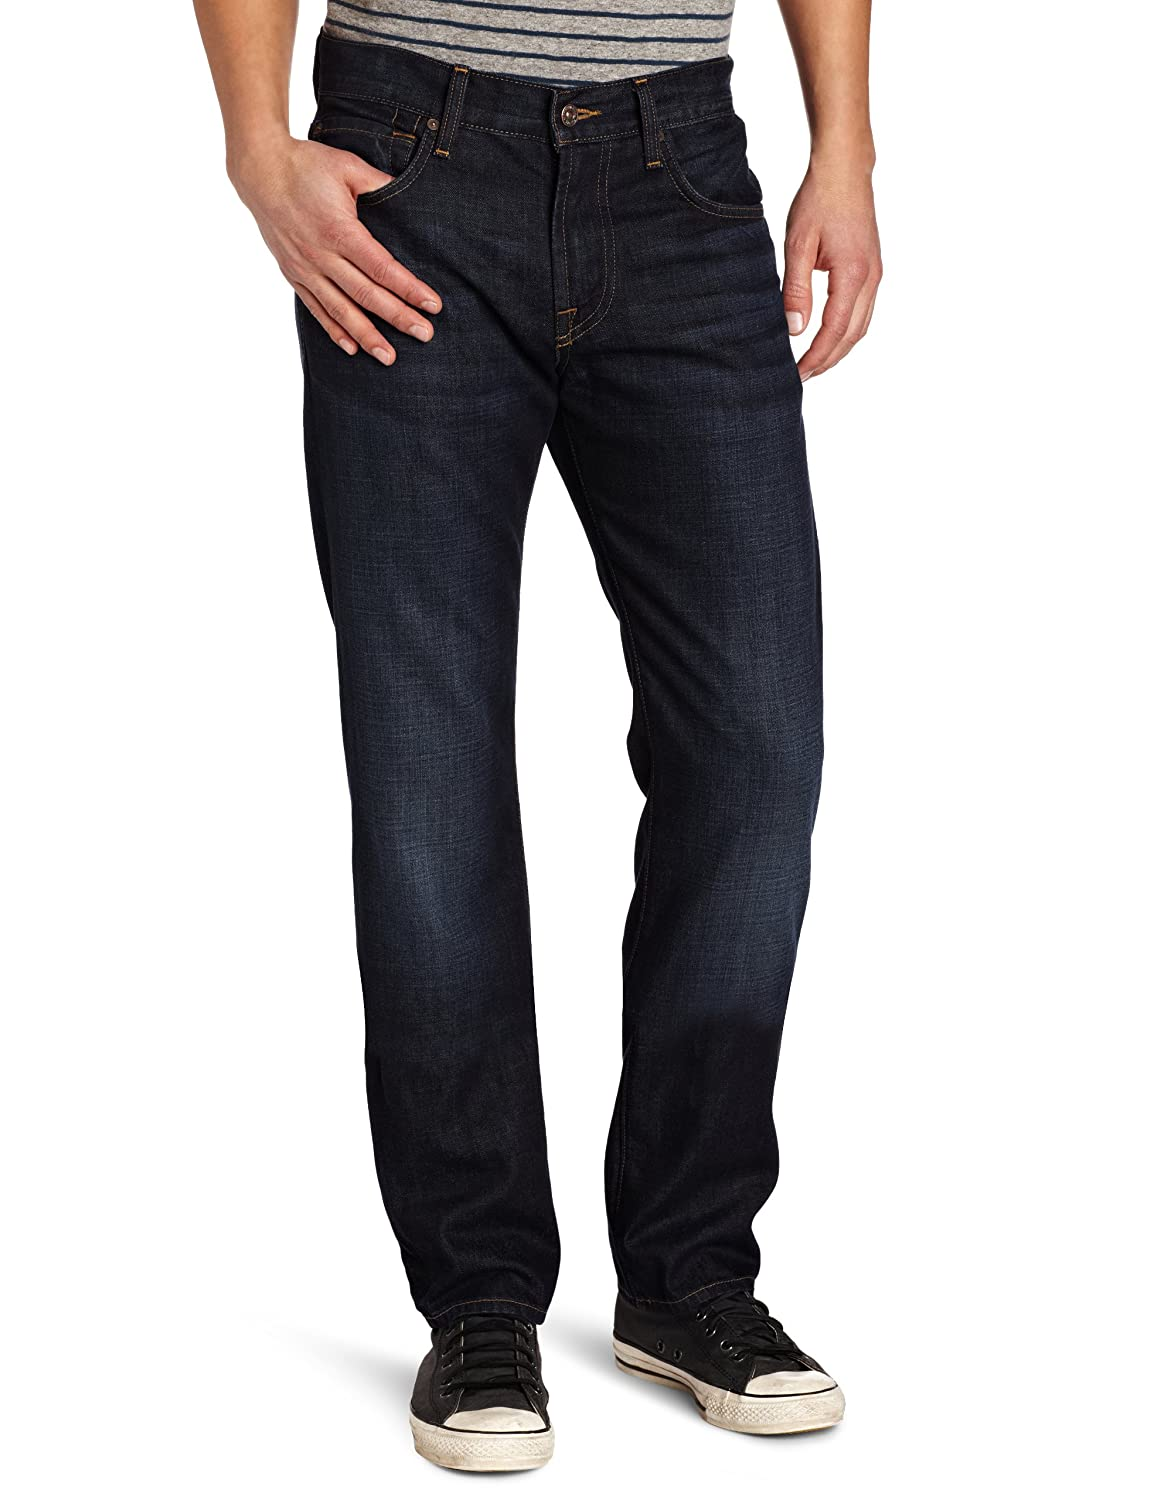 7 For All Mankind Mens Jeans Straight Leg Pant